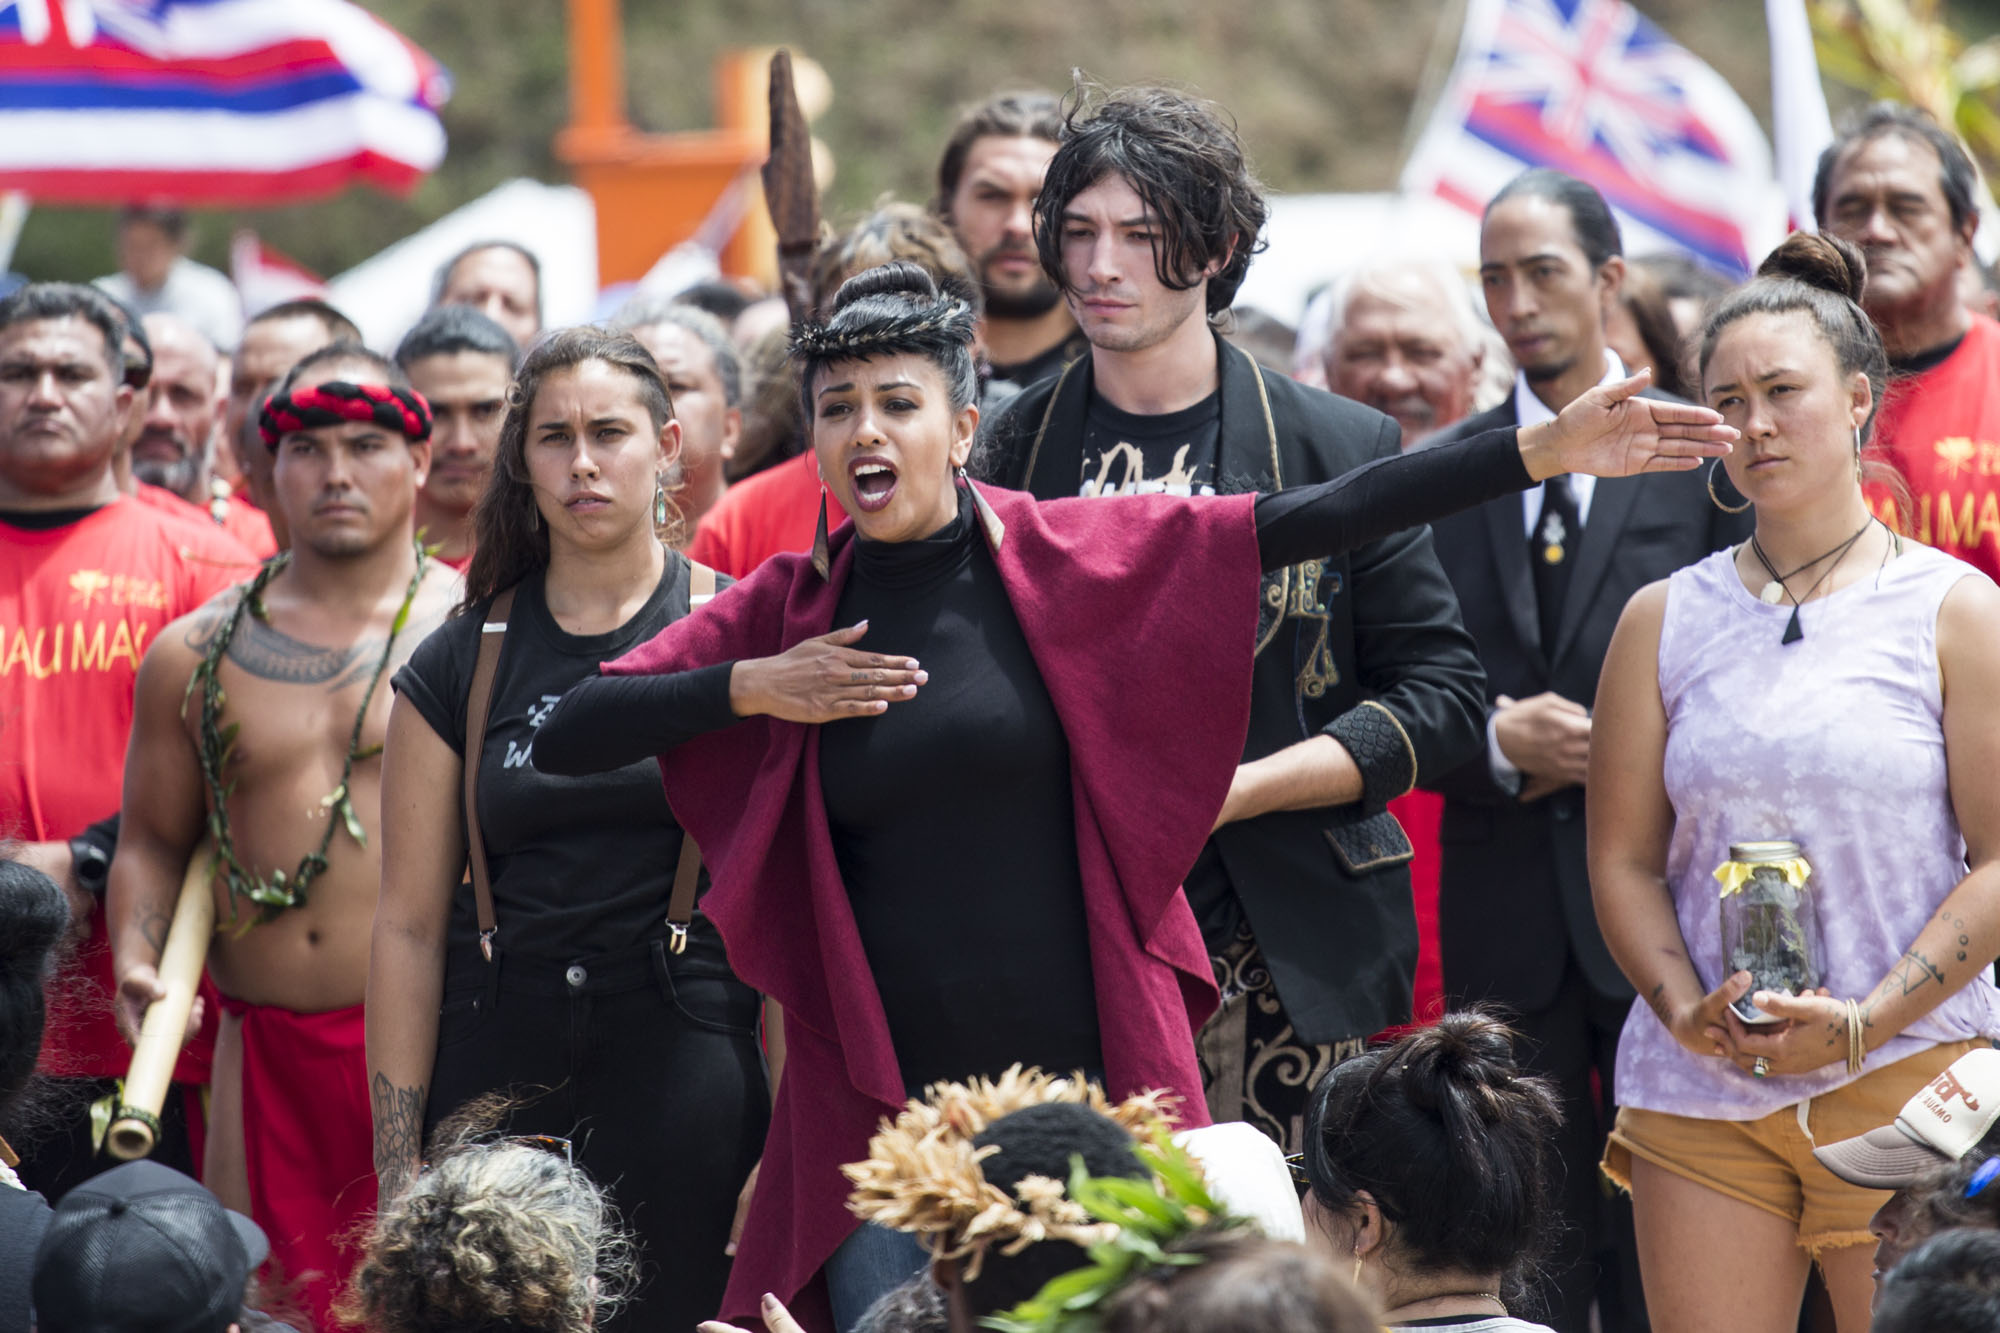 Hāwane Rios, a kiaʻi who has been a part of the movement since 2010, chants before actor Ezra Miller presents their hoʻokupu to kiaʻi and Kūpuna on August 12, 2019.